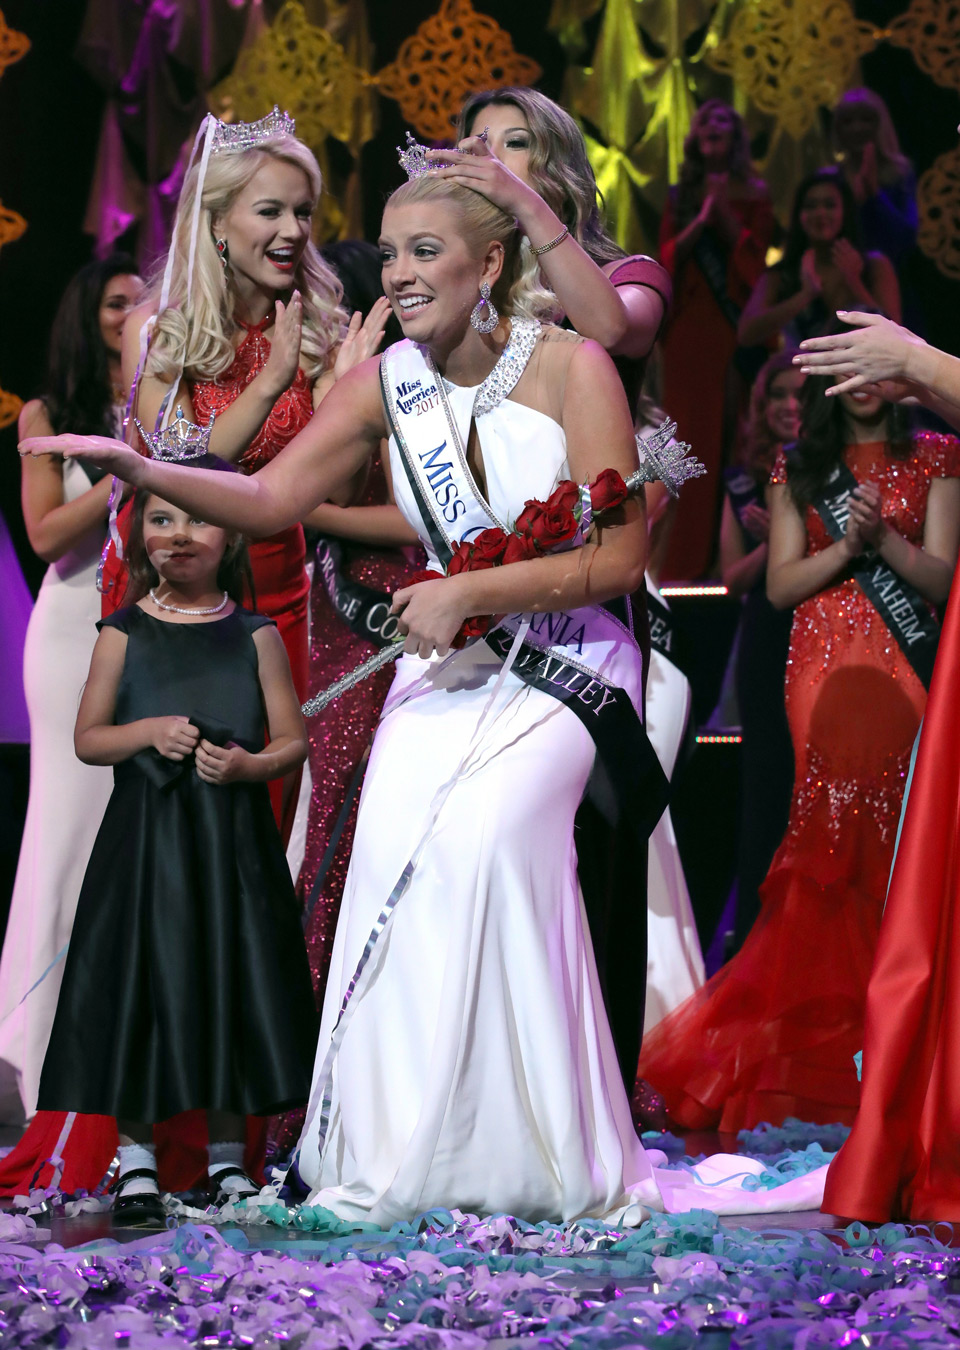 Cal Poly San Luis Obispo student Jillian Smith won a $25,000 scholarship with the title of Miss California